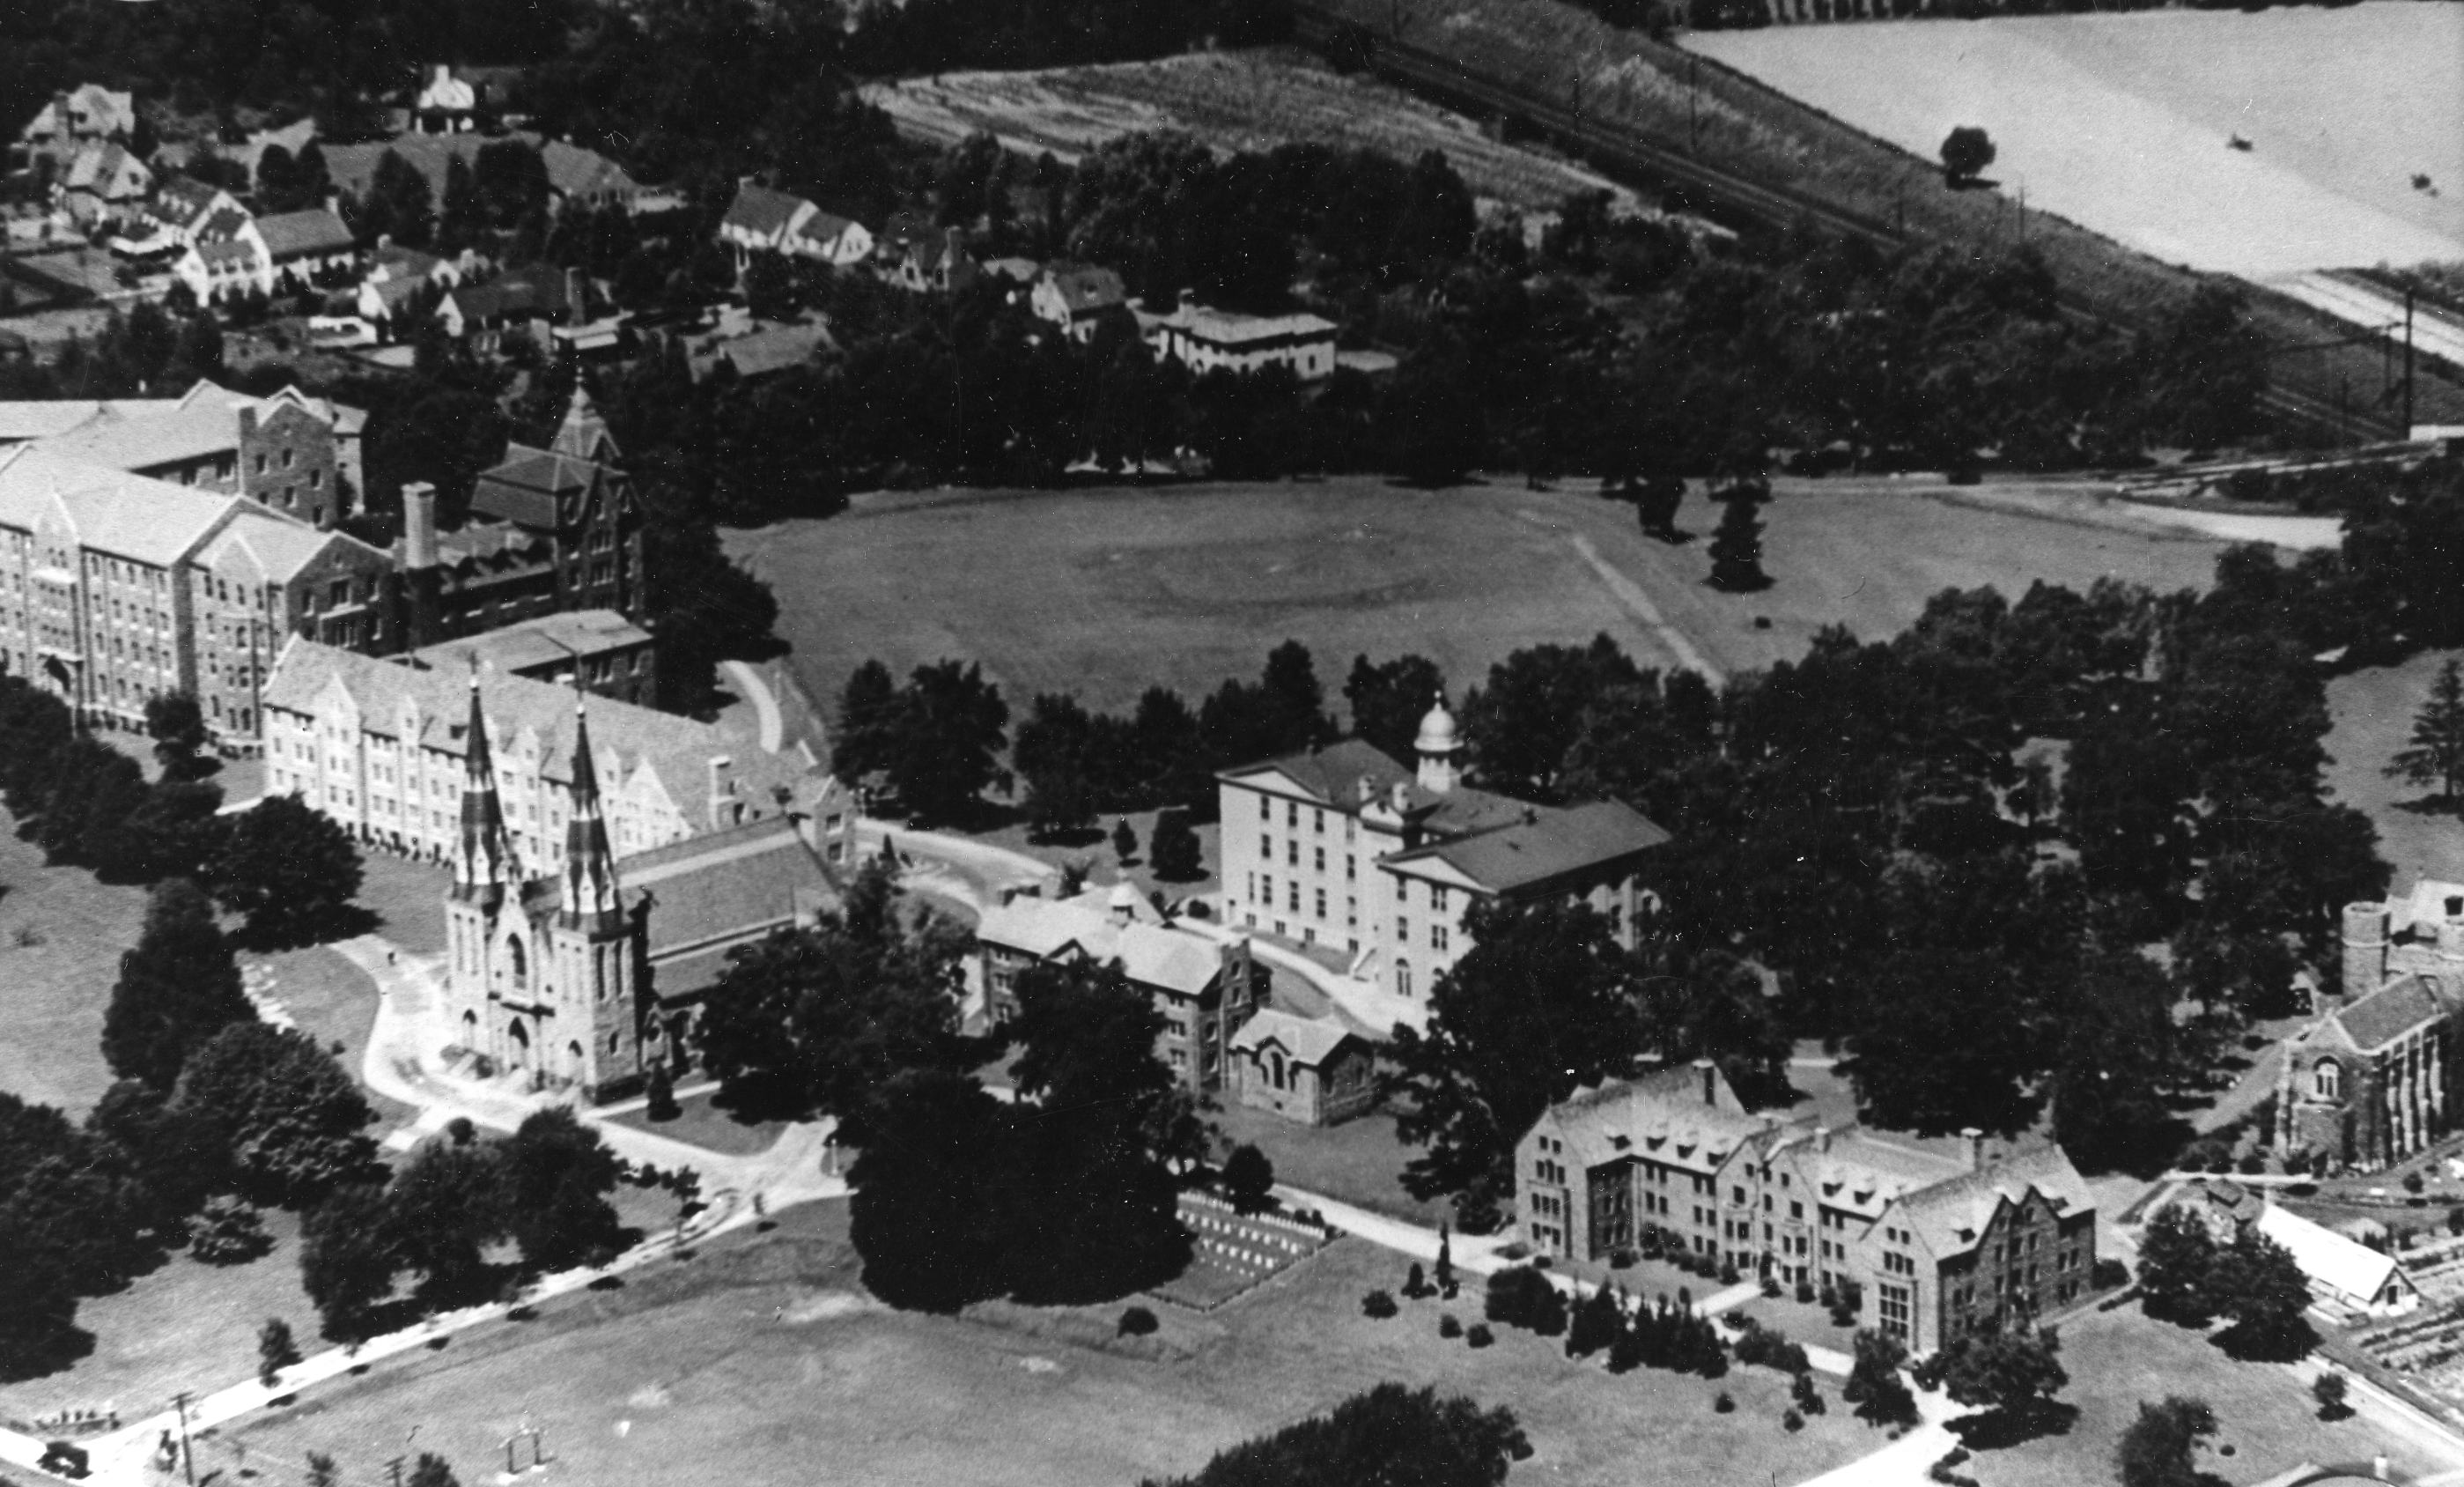 Aerial view of Villanova campus, 1928-1930